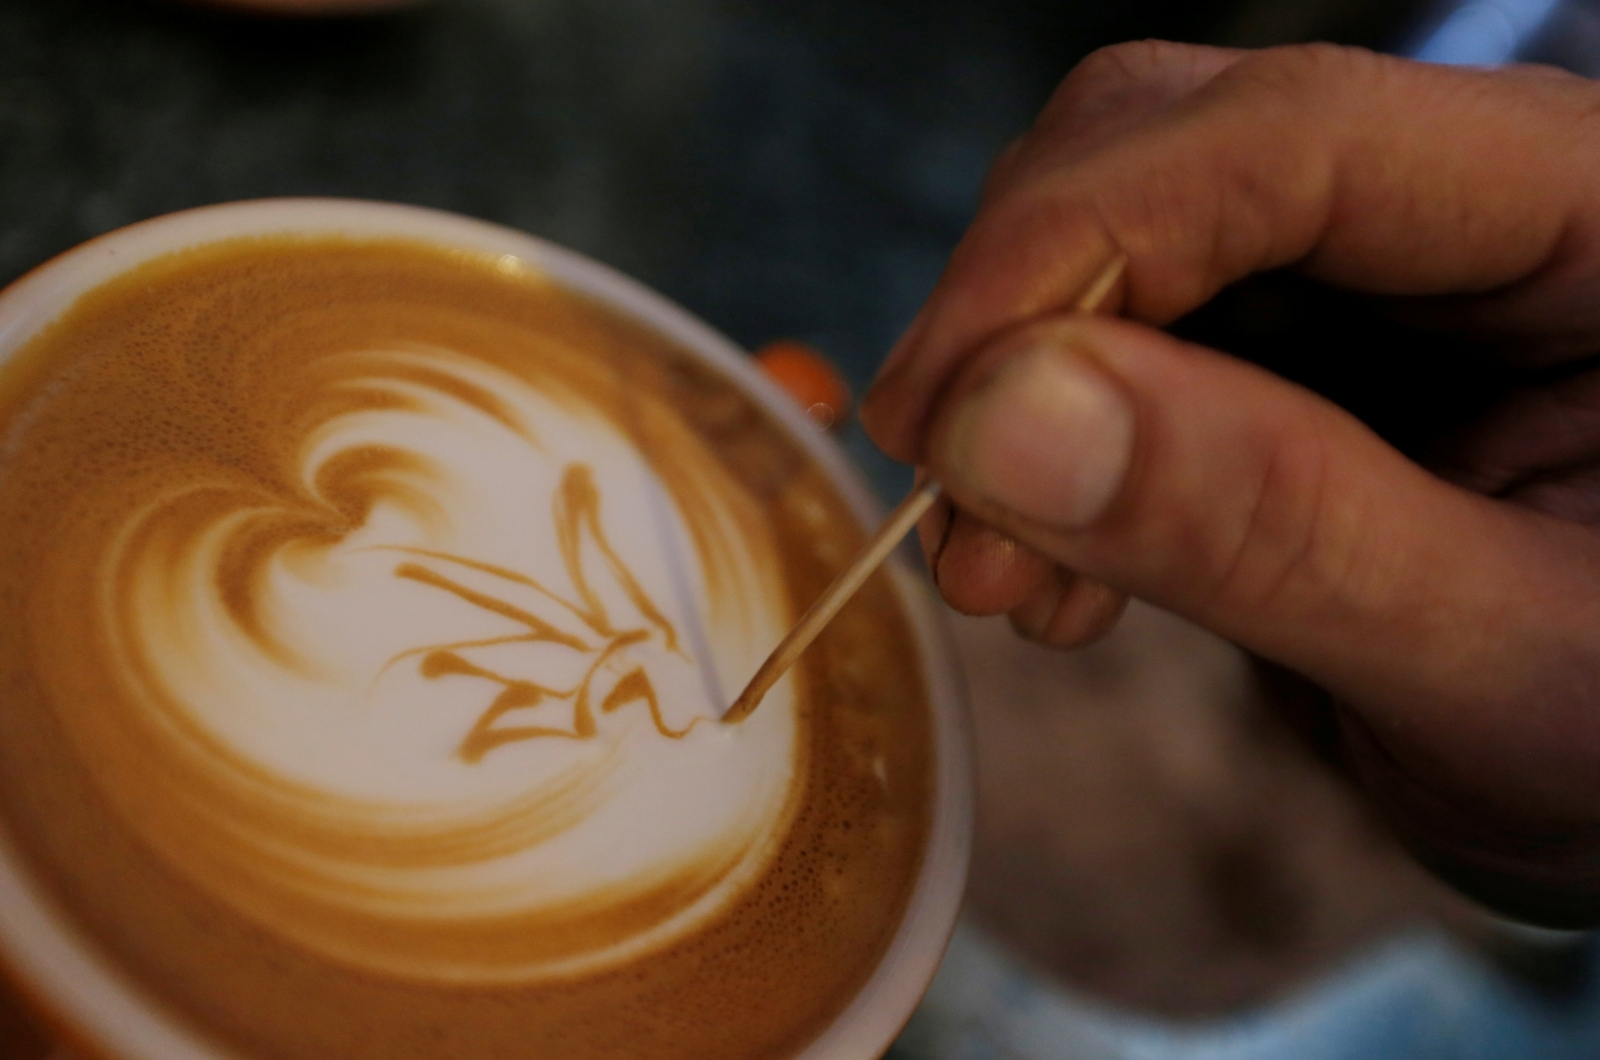 Massive meta-study confirms moderate coffee consumption is good for you